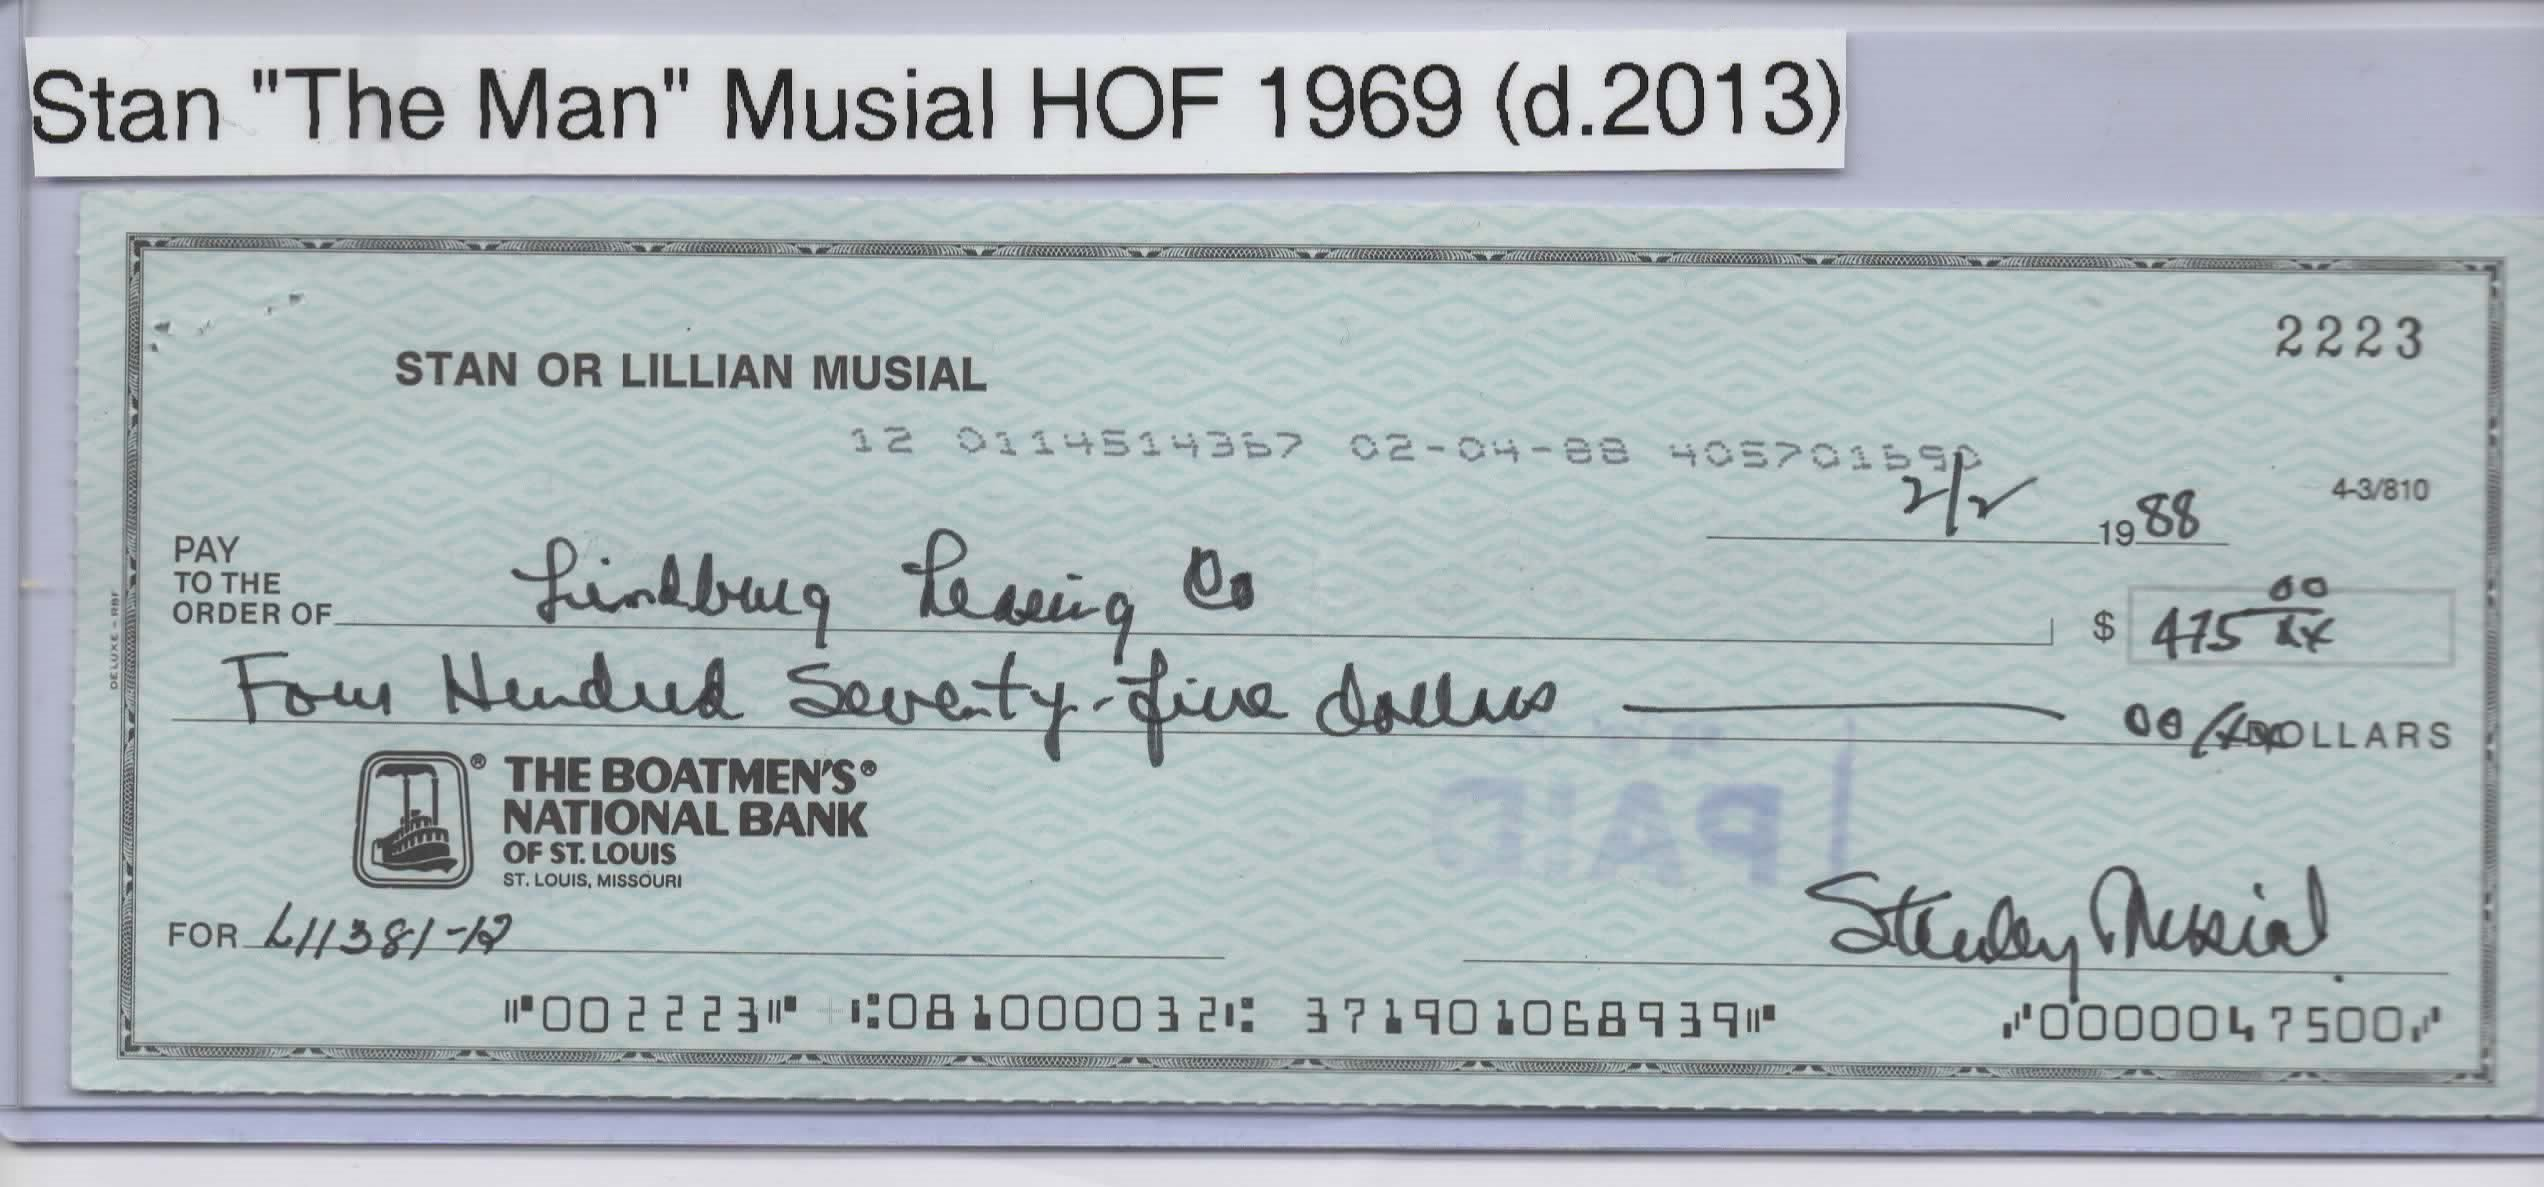 STAN MUSIAL SIGNED PERSONAL CHECK #2223 ST. LOUIS CARDINALS